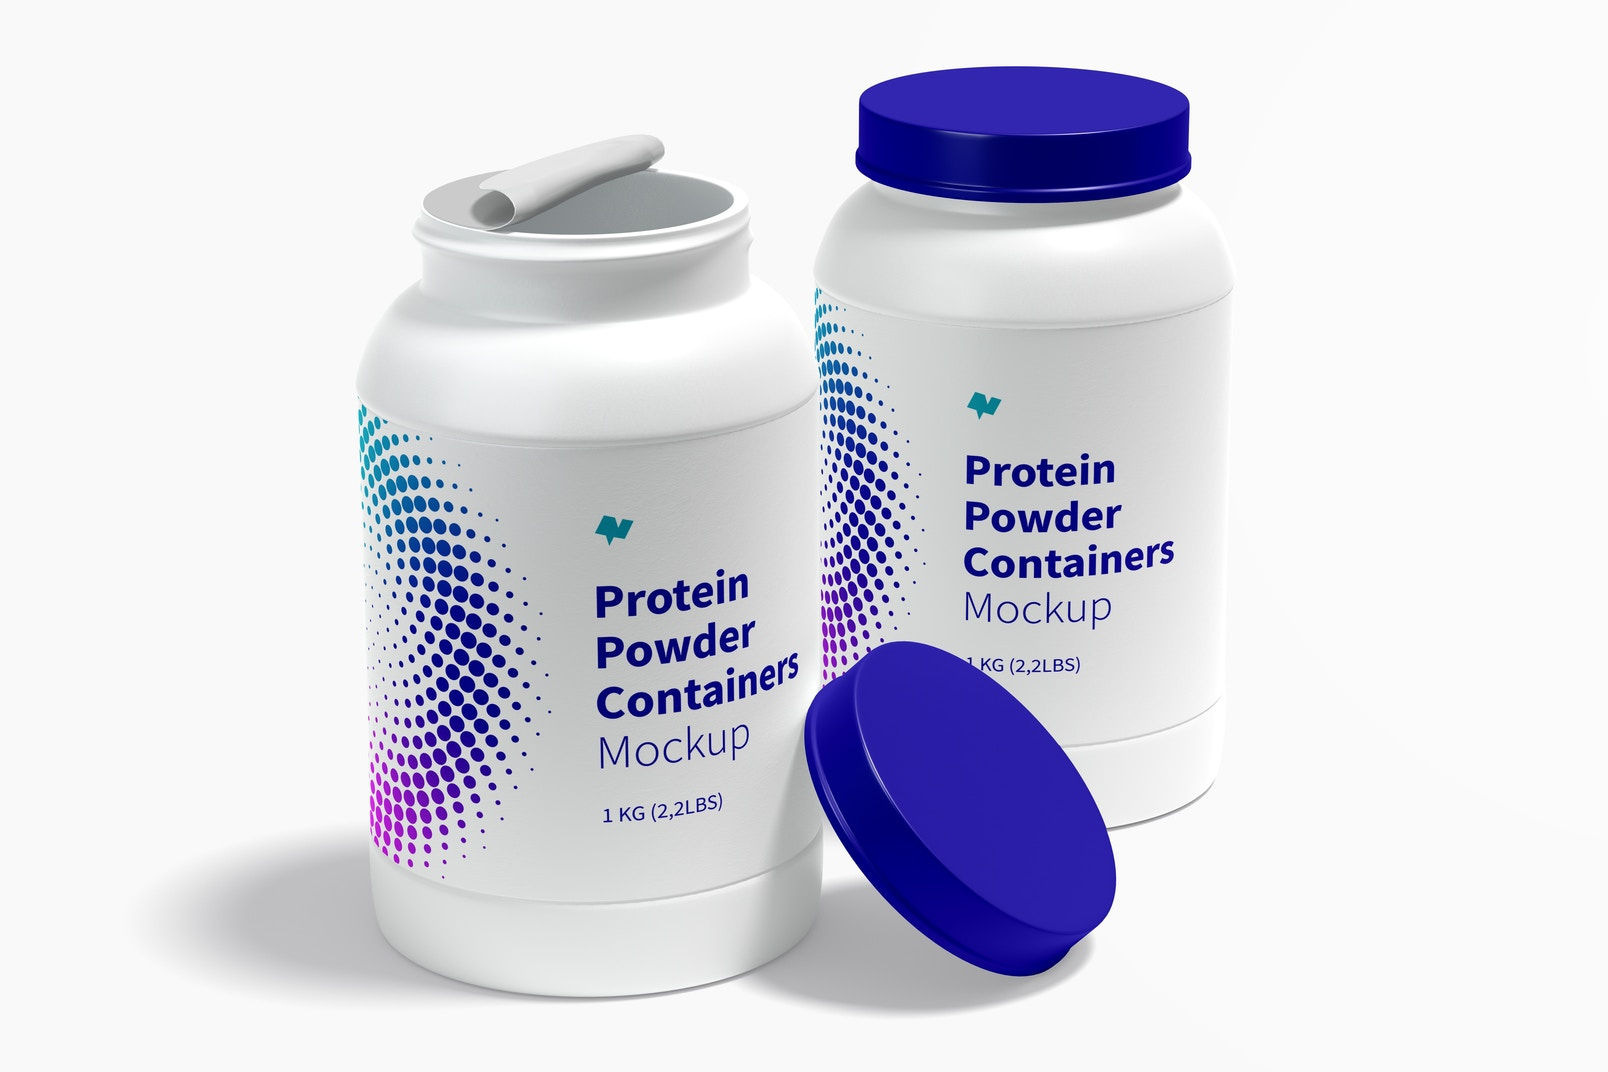 Protein Powder Containers Mockup